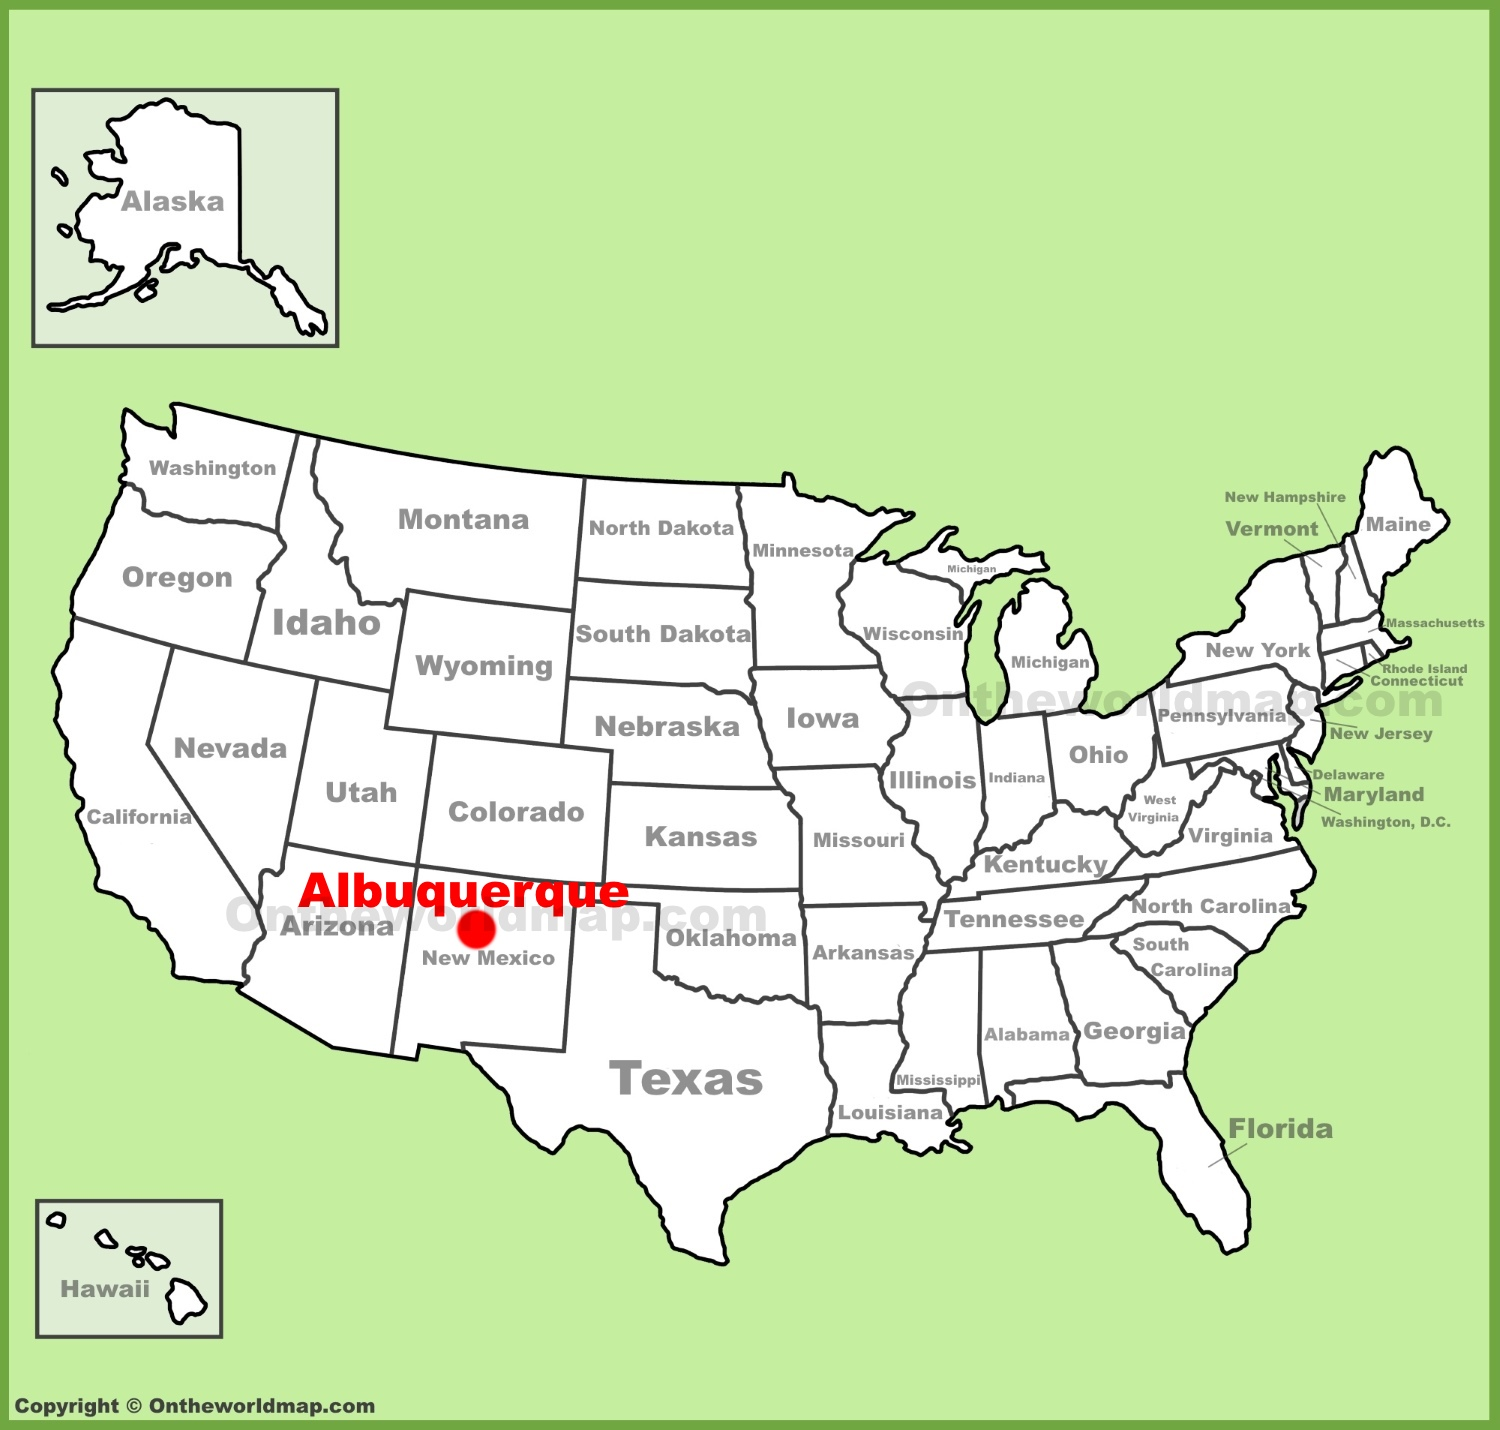 Albuquerque location on the US Map